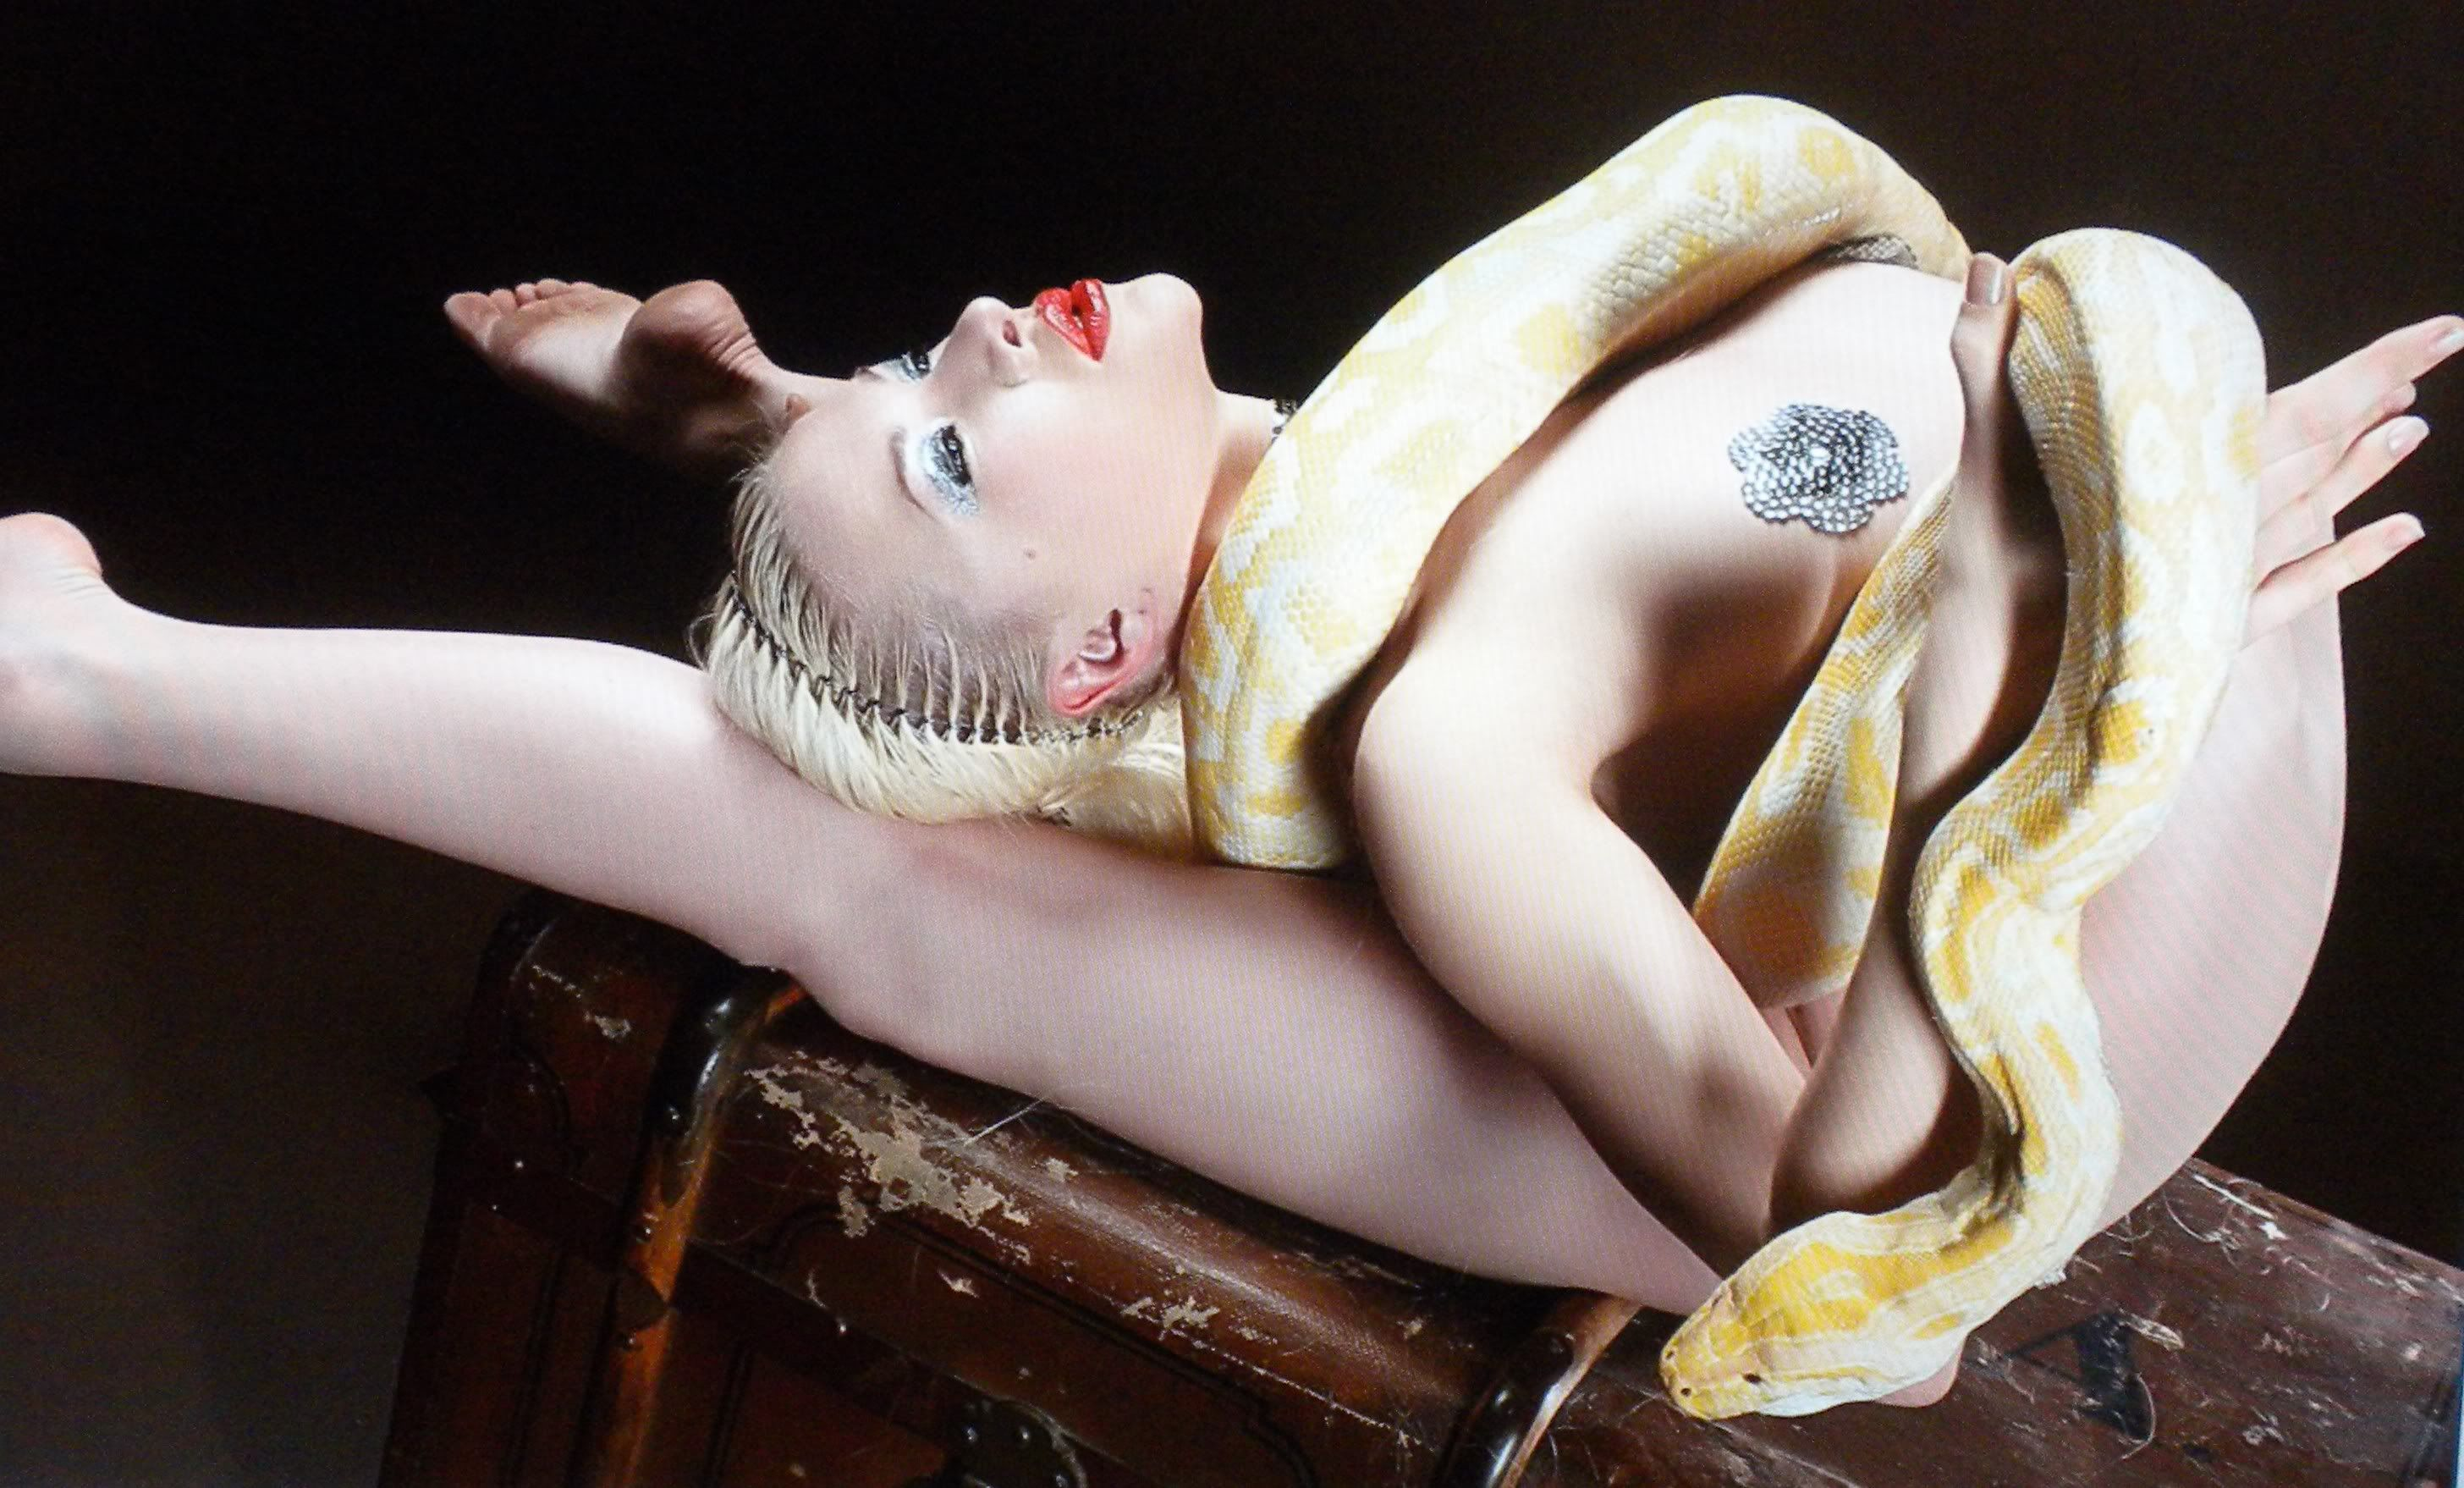 Contortionist zlata nude contortion thank for